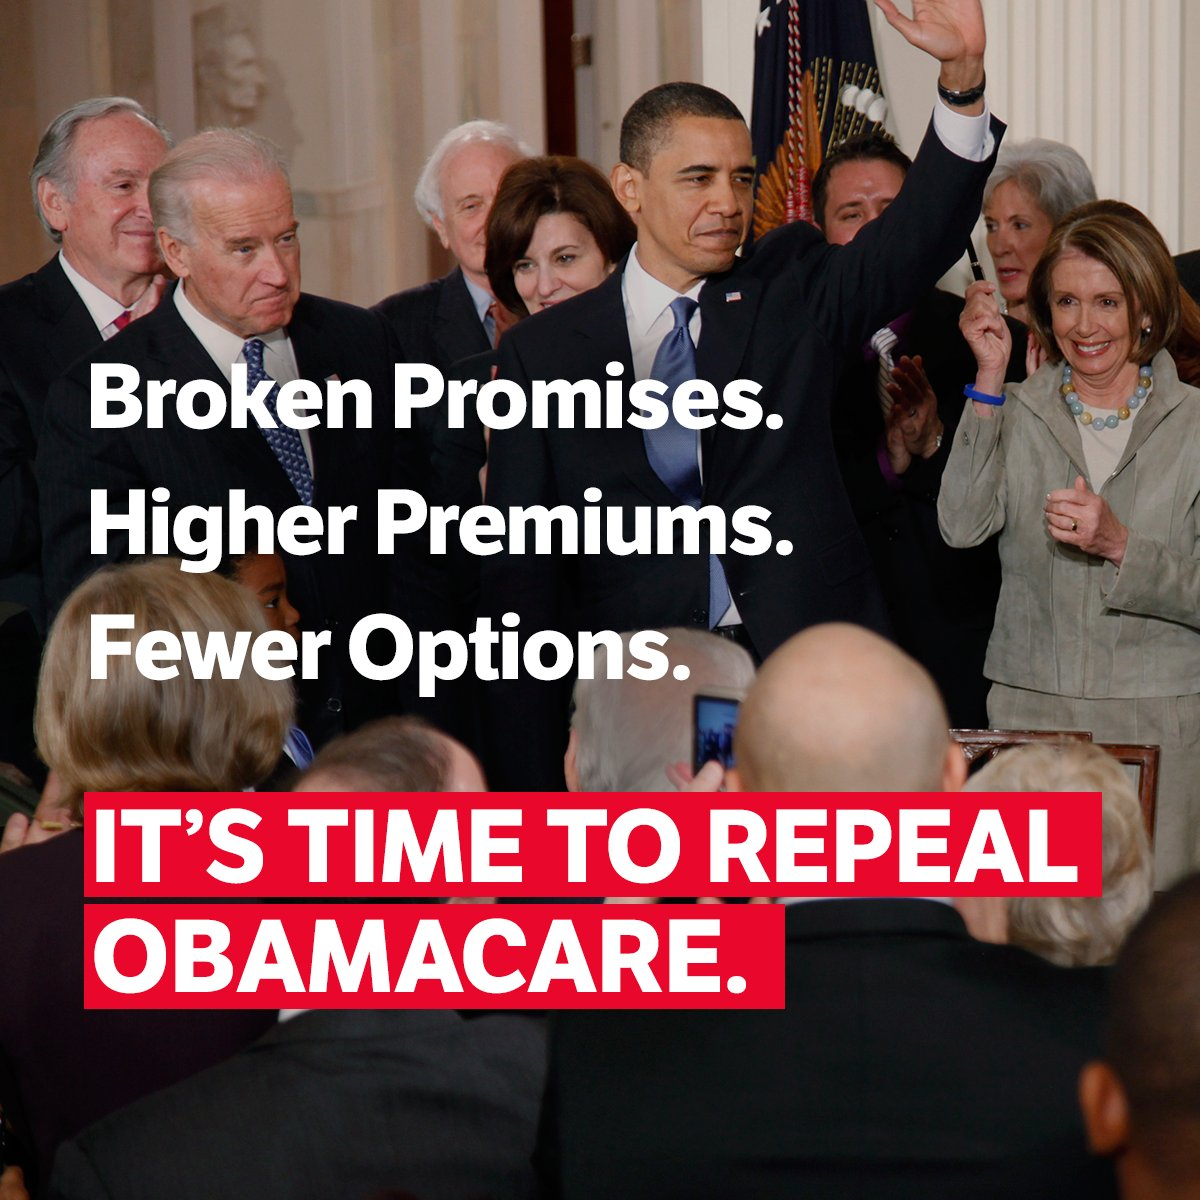 It's time to REPEAL OBAMACARE.  RT if you agree ⬇️ https://t.co/0Jveita069